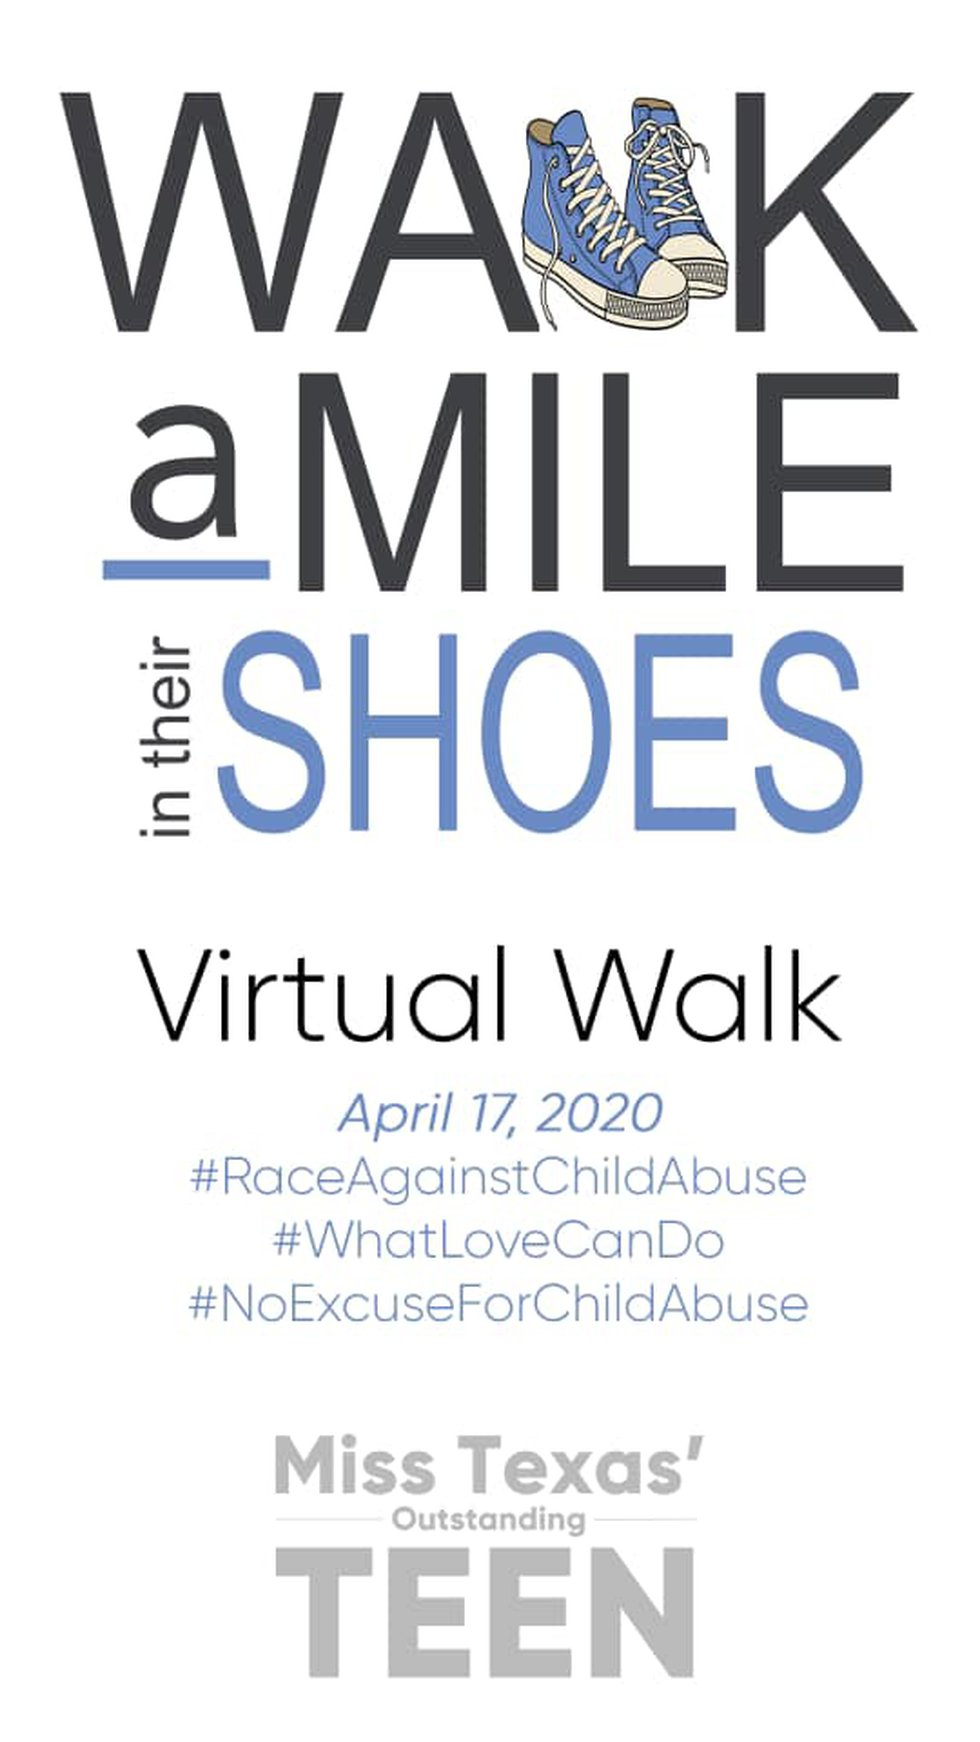 Walk A Mile in their Shoes happening Friday April 17th.